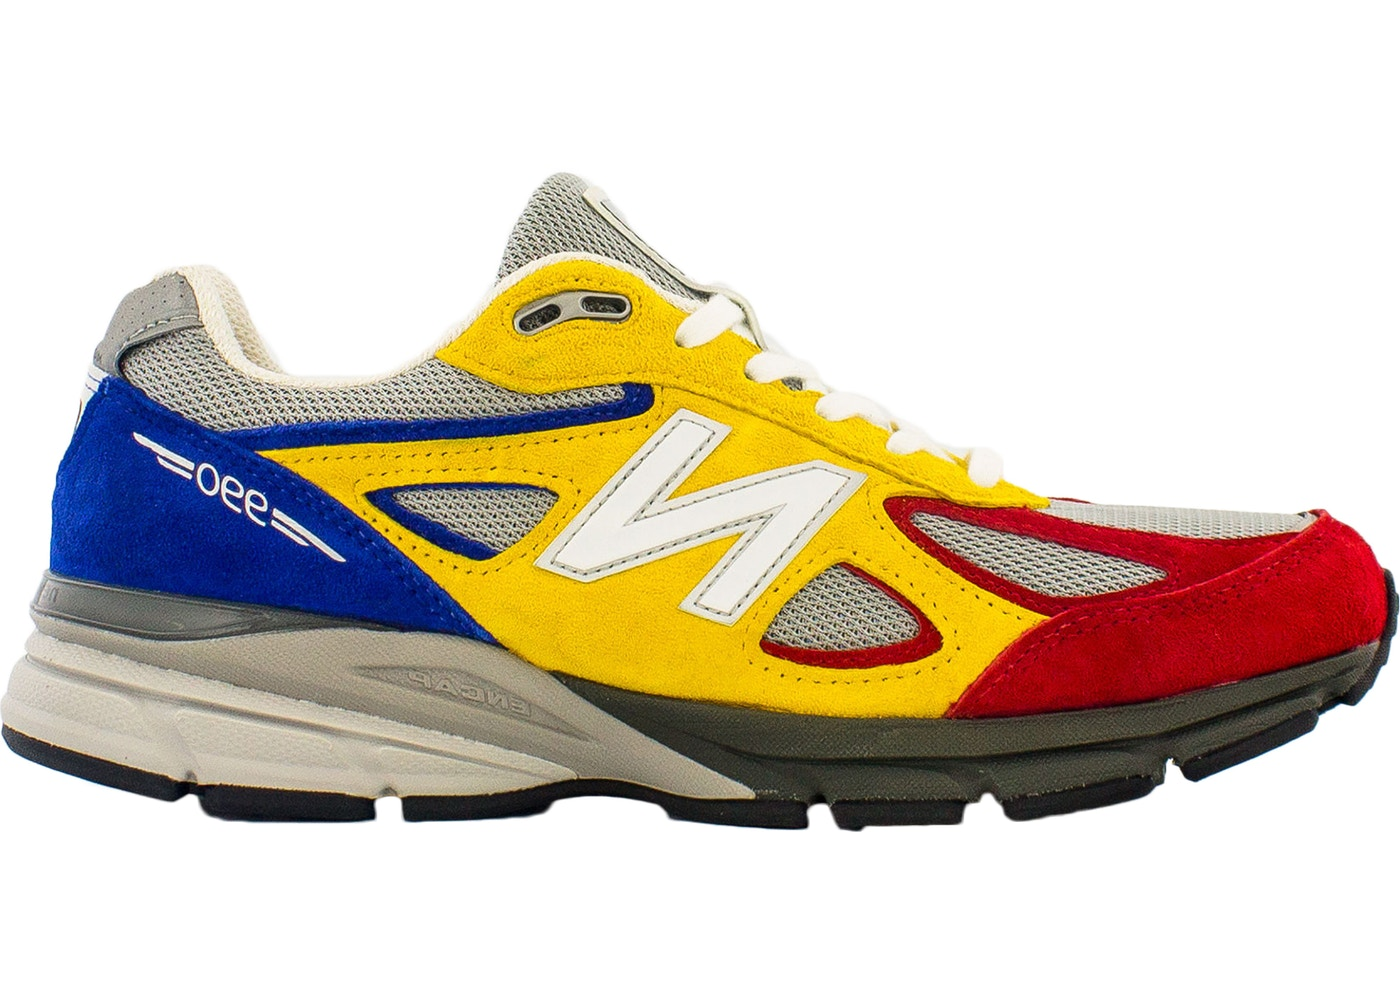 timeless design 1e545 27926 New Balance 990v4 Shoe City x Eat